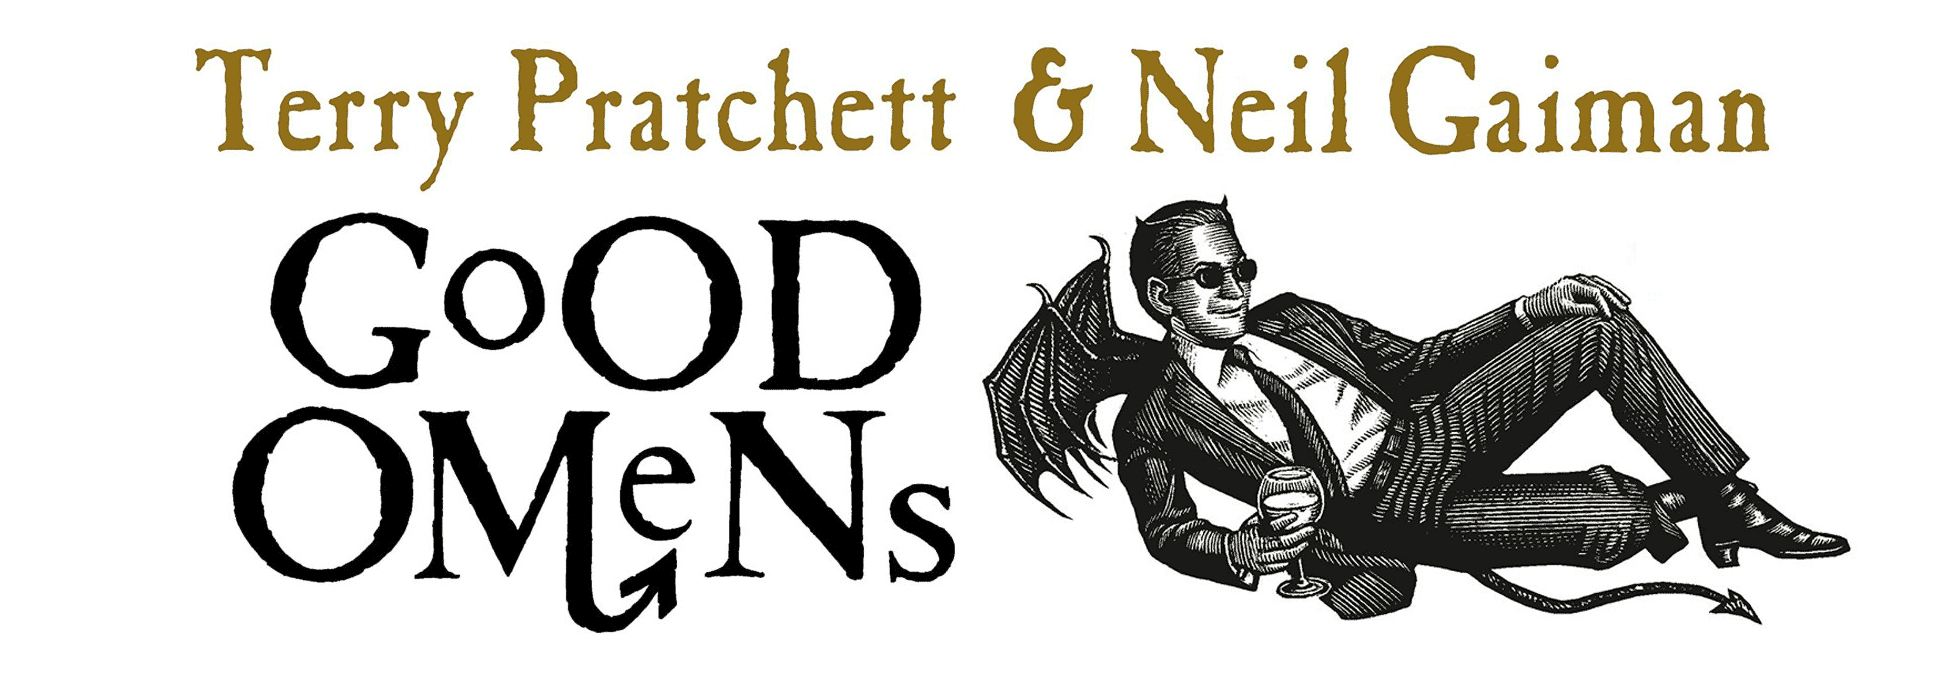 Image result for good omens